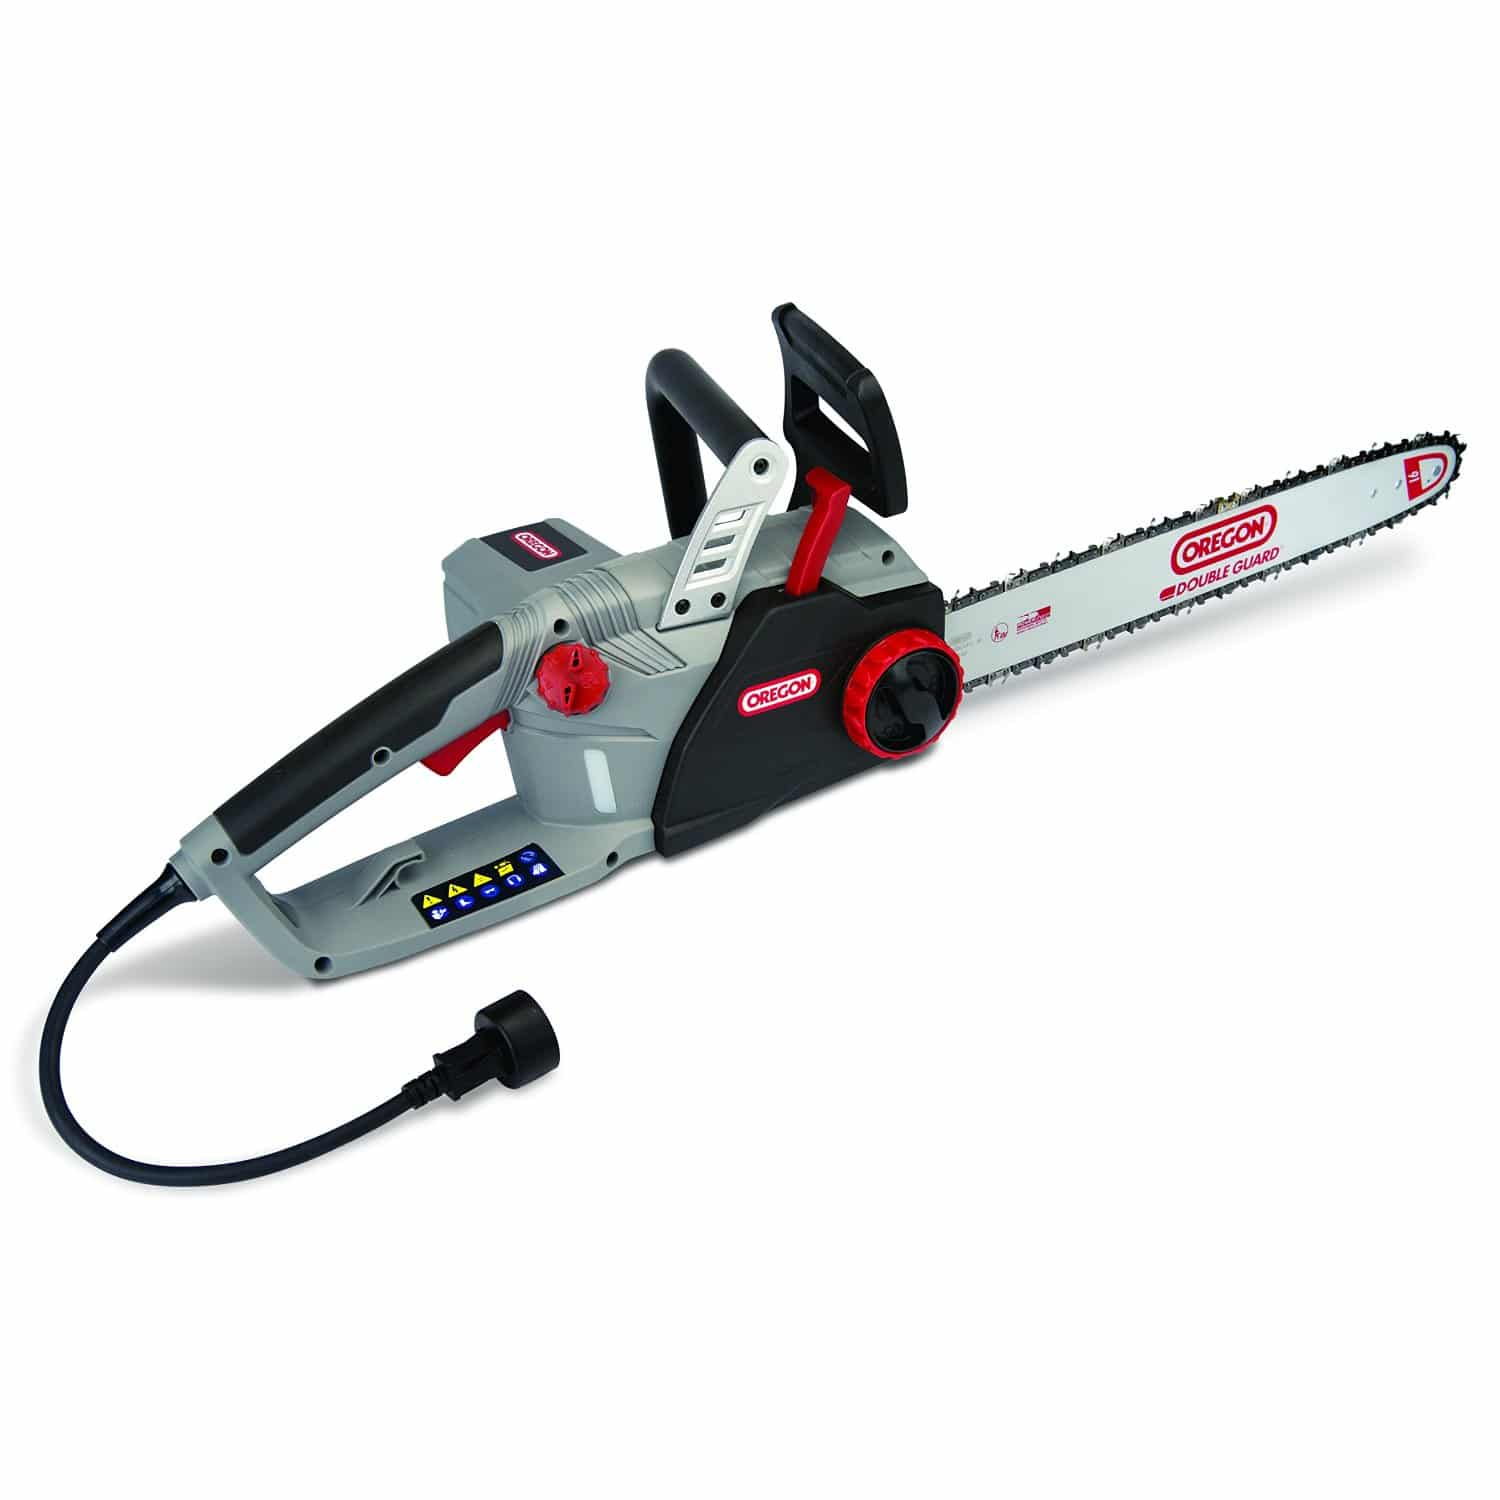 Best Electric Saw